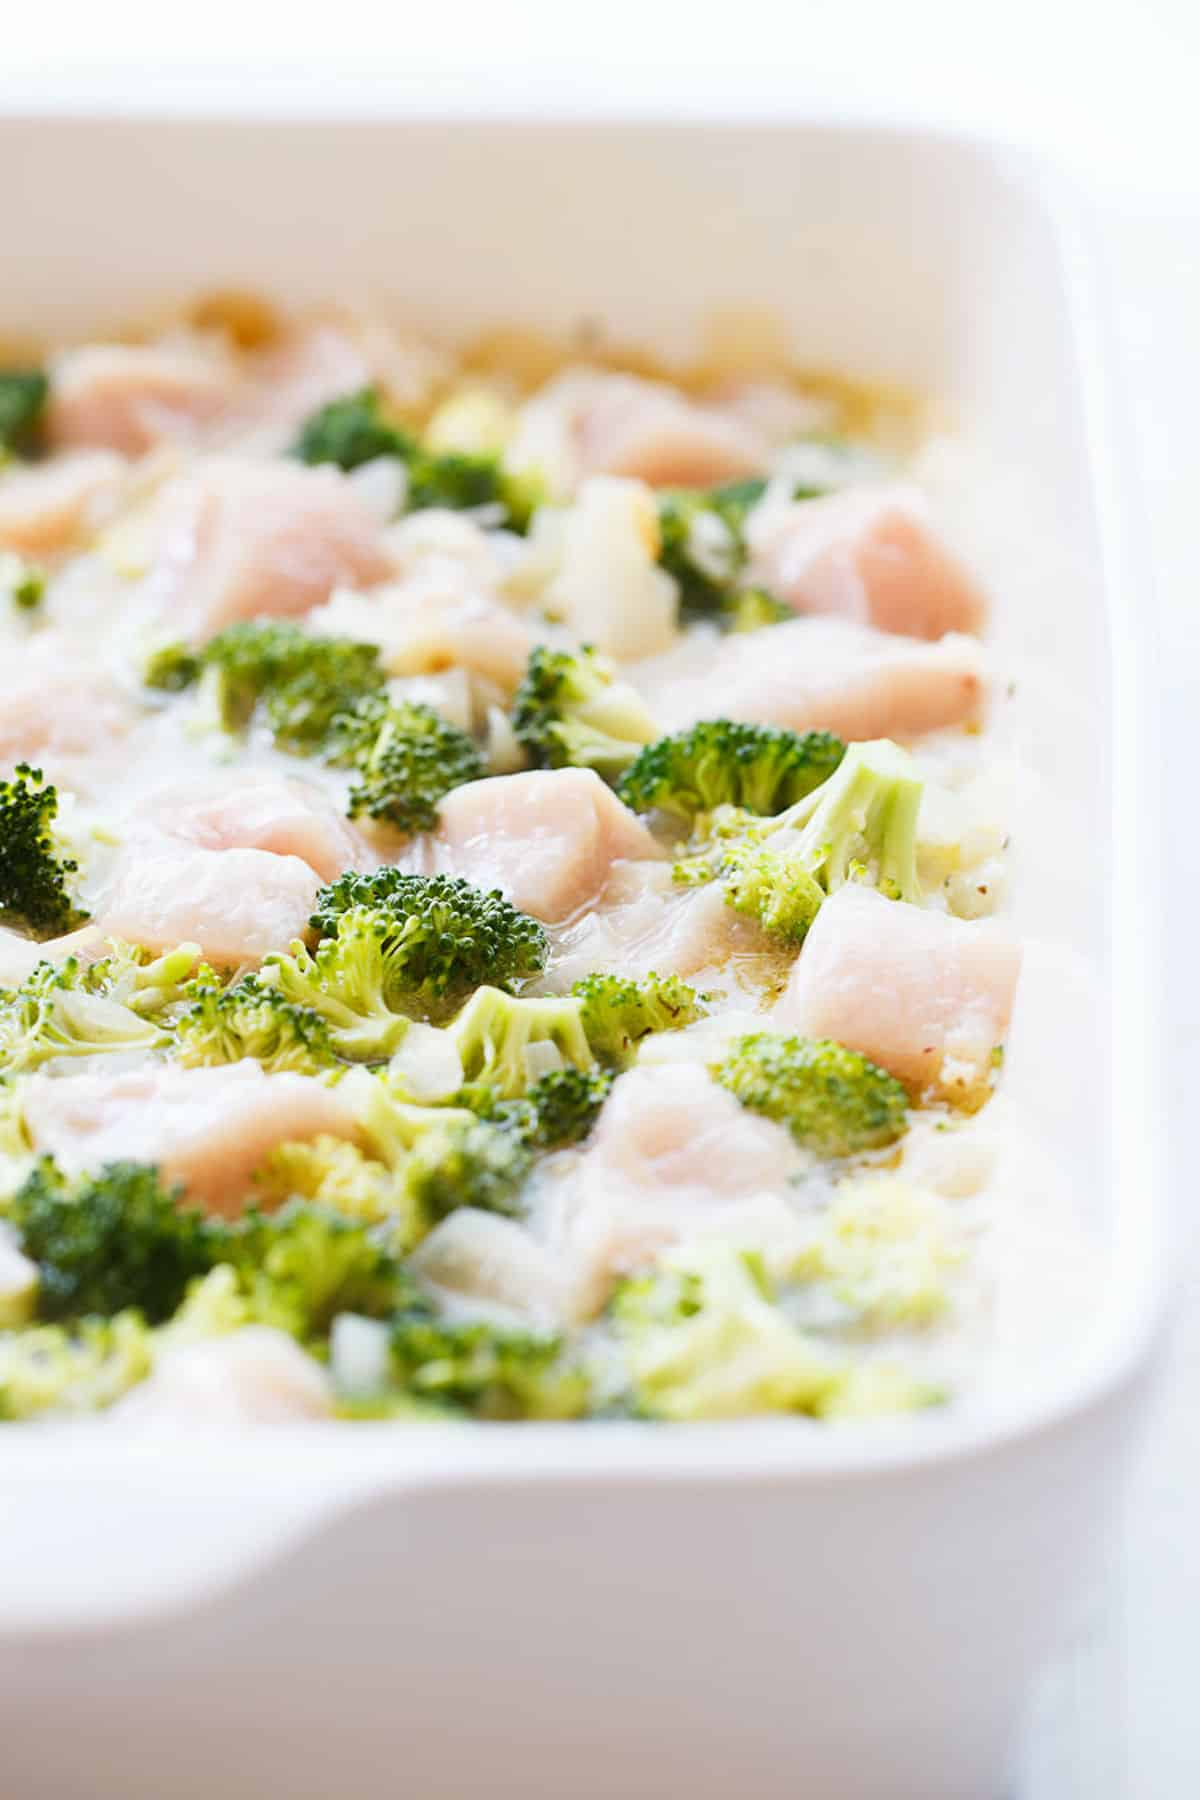 broccoli florets and chicken pieces in a casserole dish ready to be baked